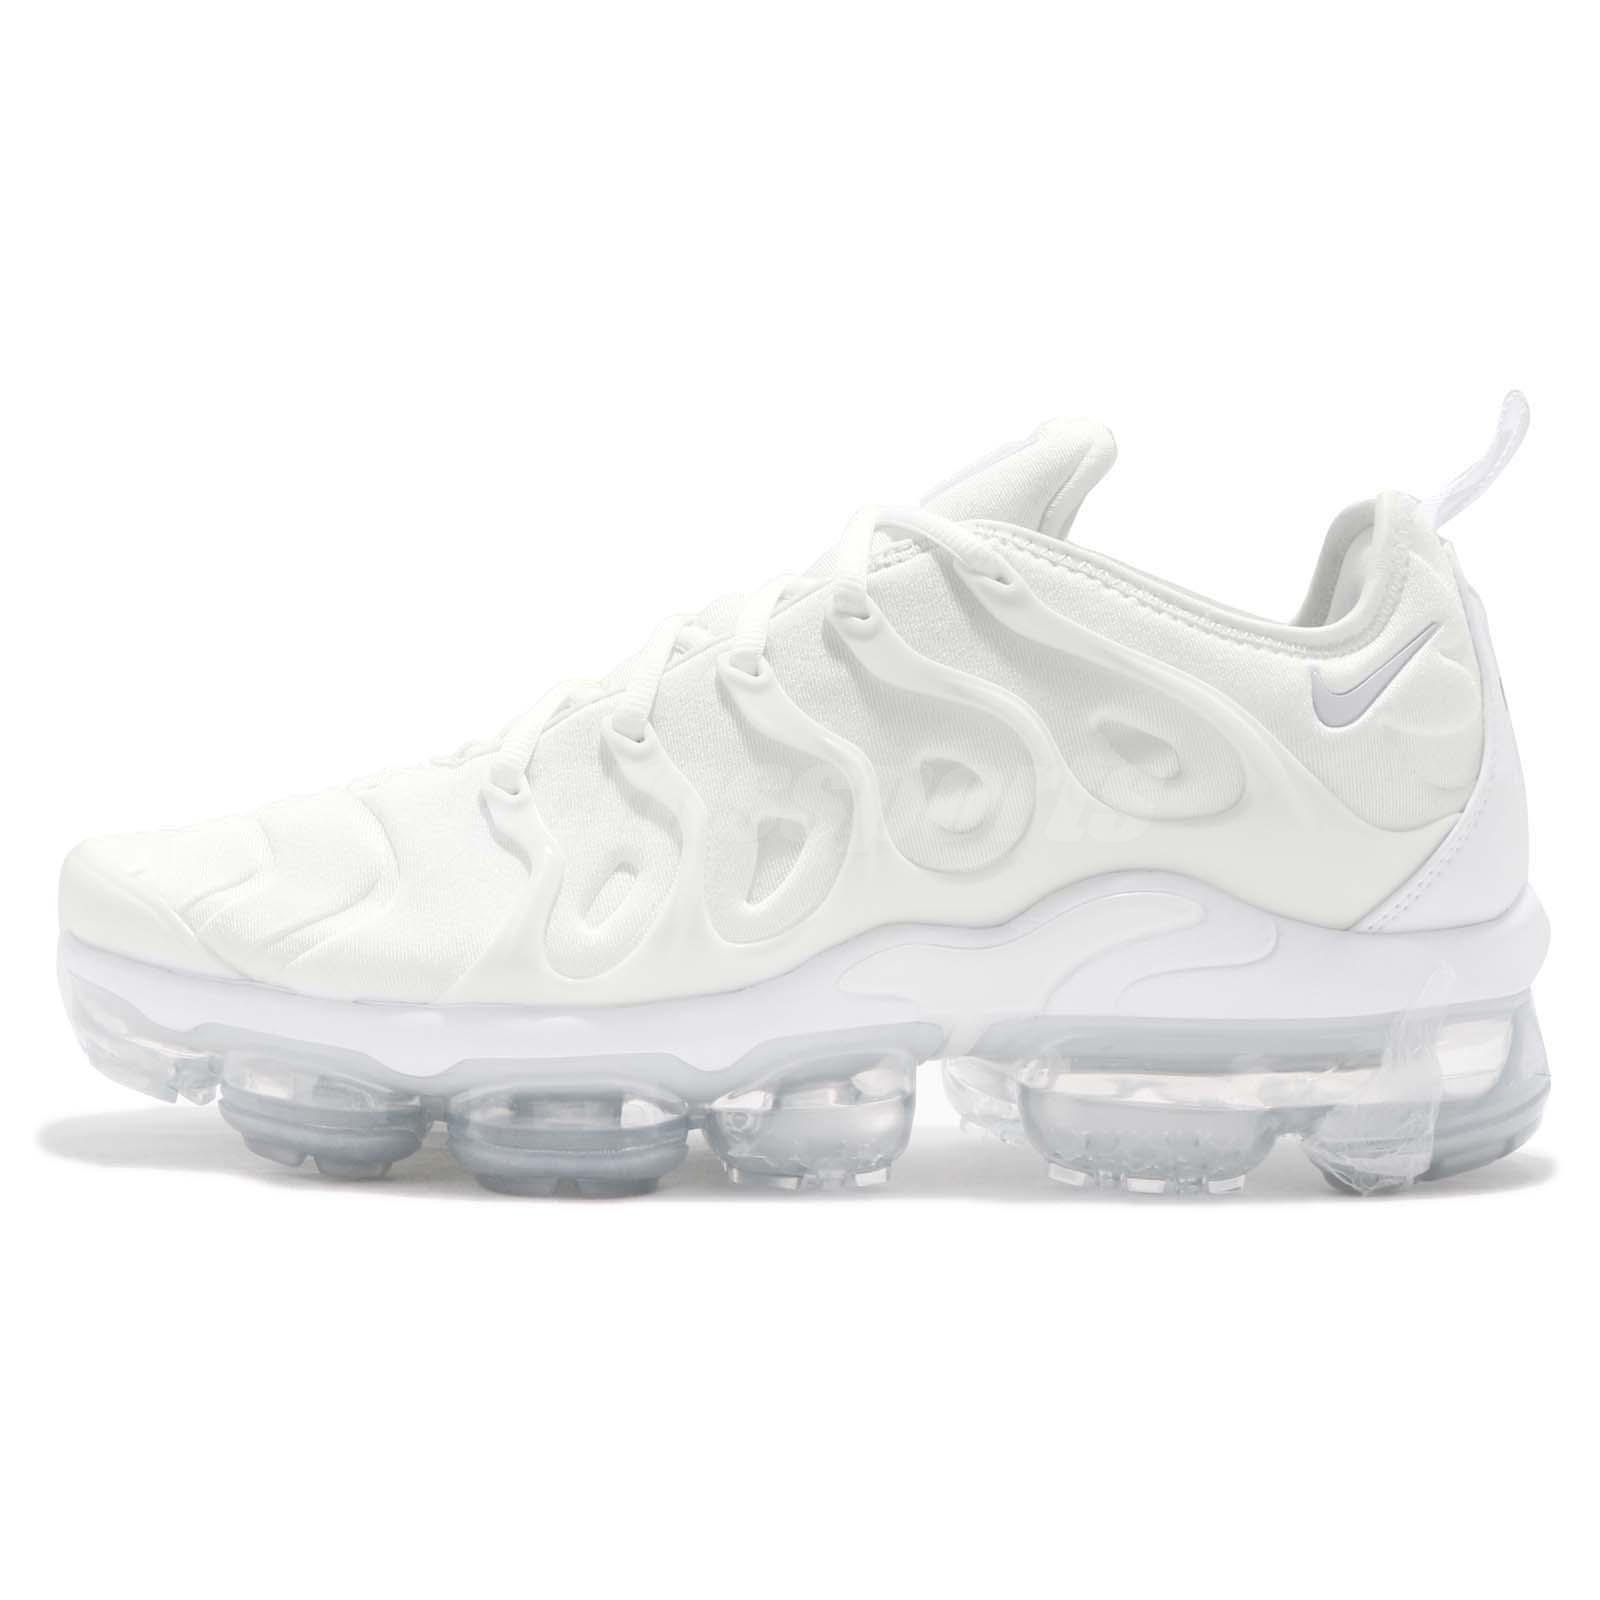 detailed look 1dfc5 51b6f ... 50% off nike air vapormax plus white pure platinum men running shoes  sneakers 924453 100